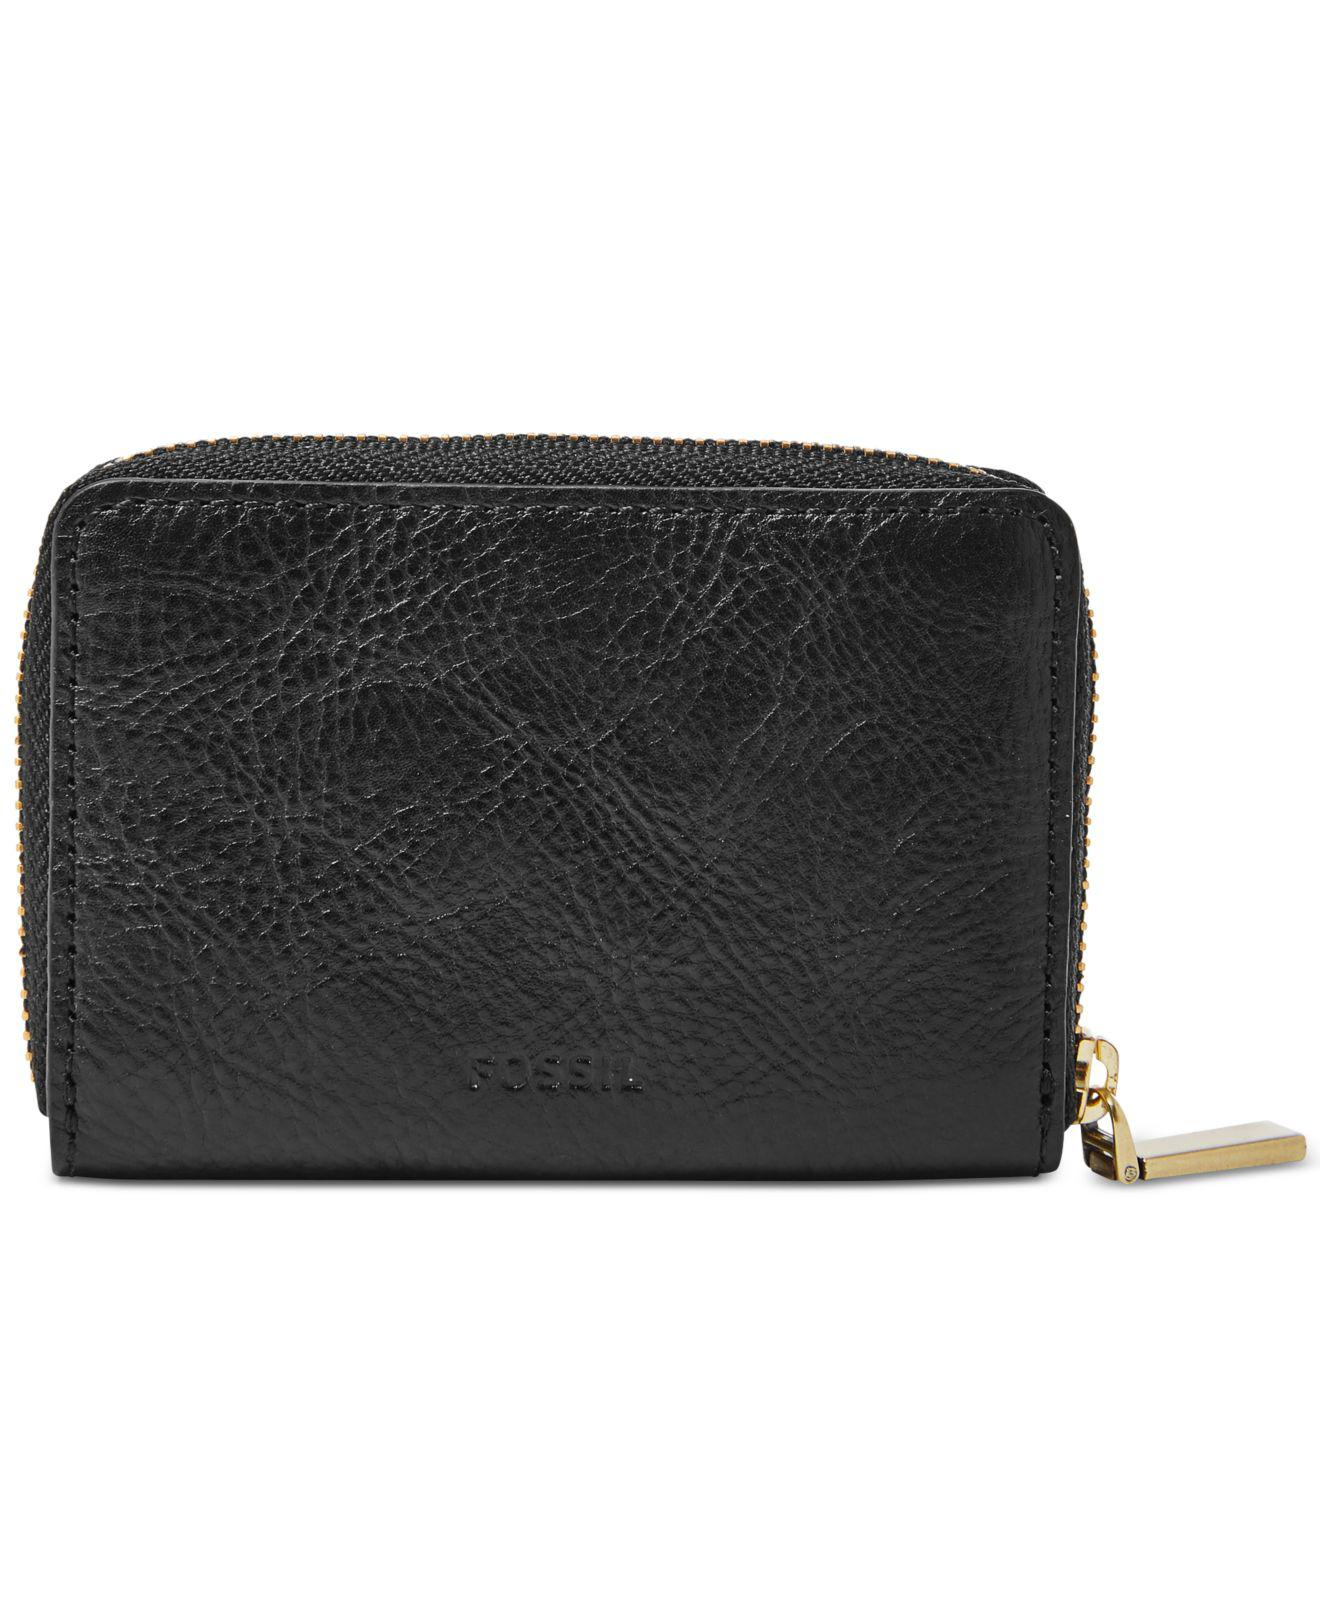 outlet store 30eaa 64298 Fossil Black Rfid Mini Zip Card Case